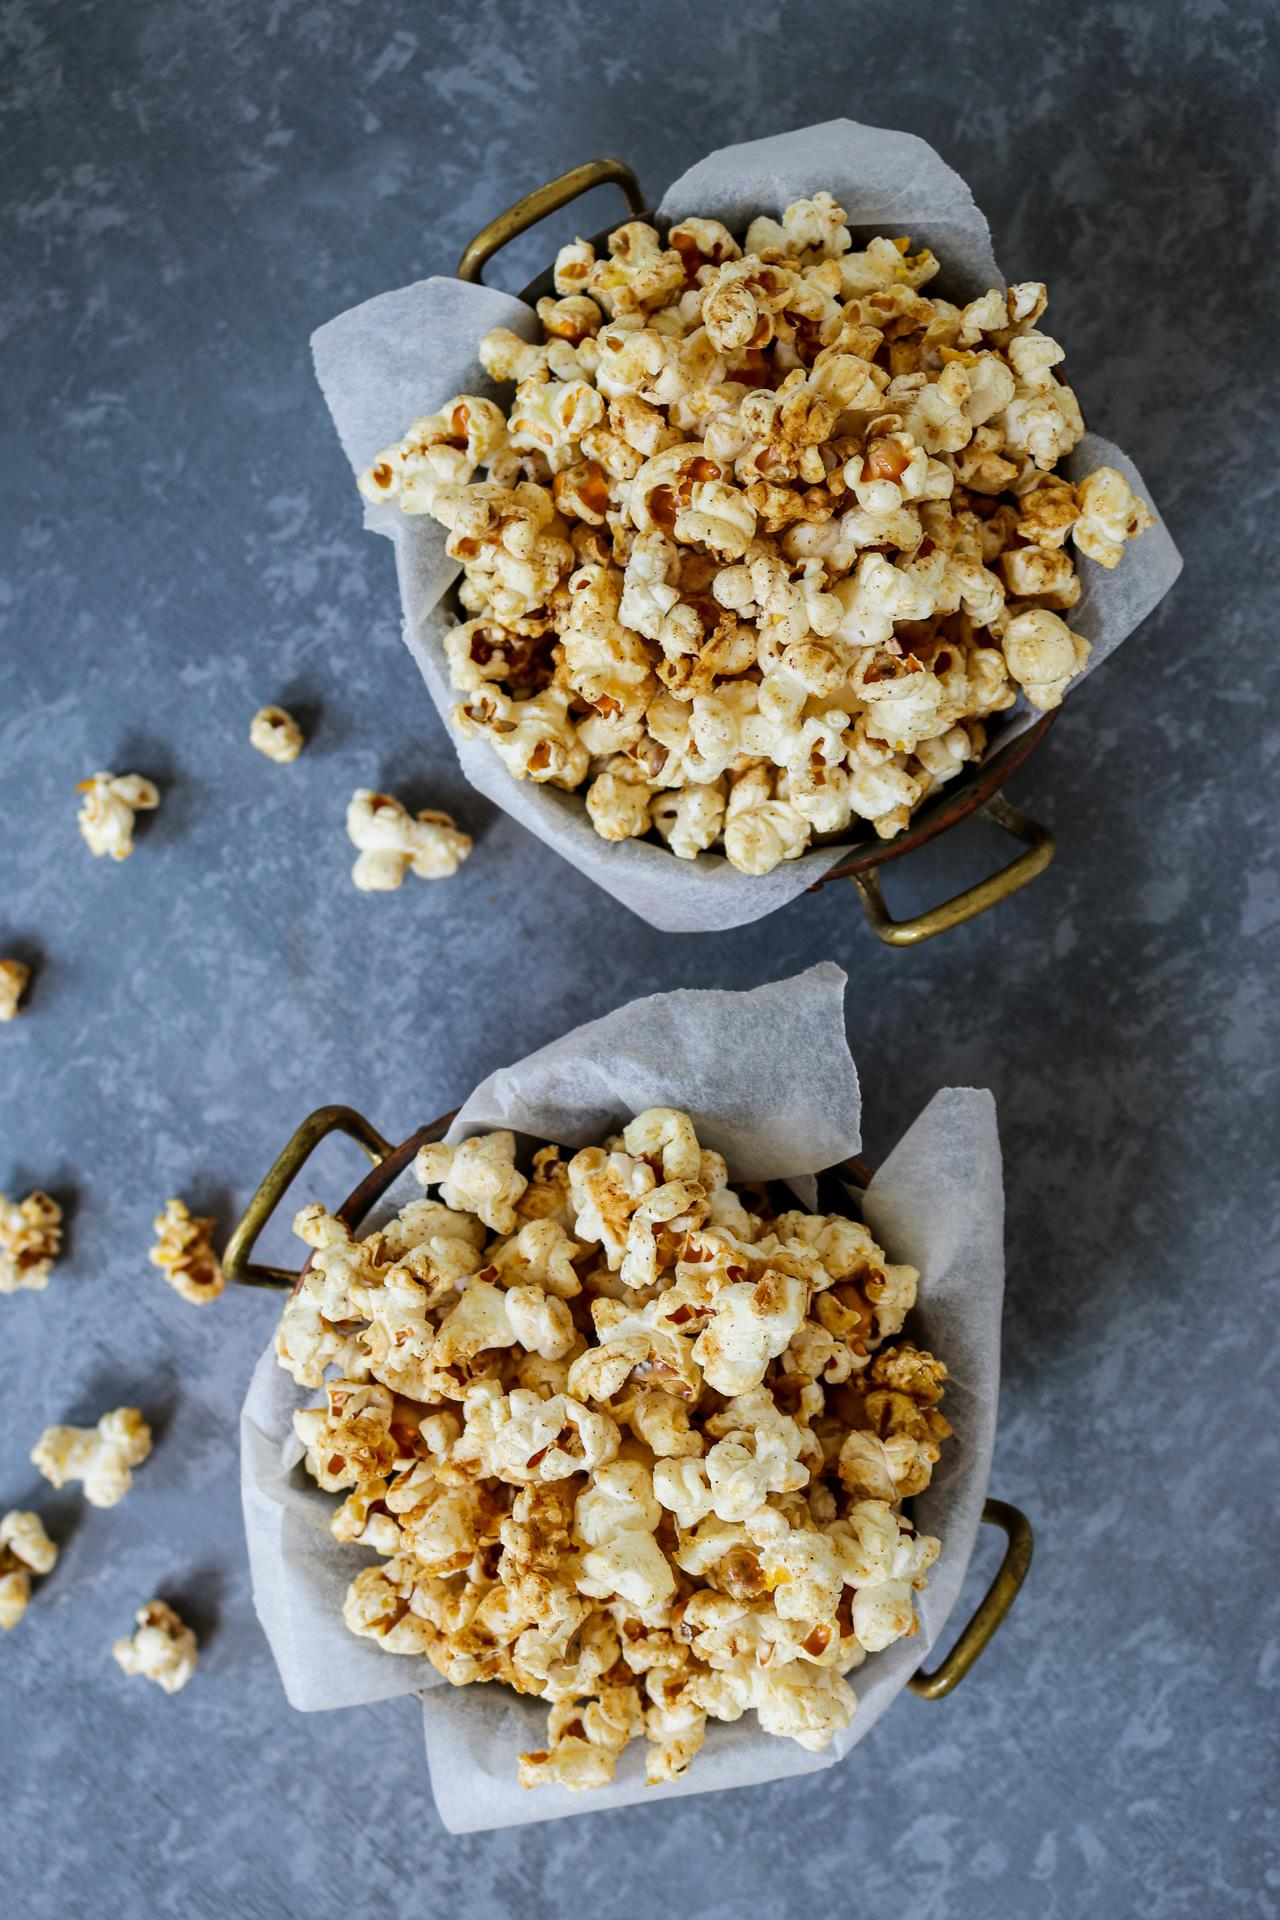 Main image of Vegan Caramel Popcorn